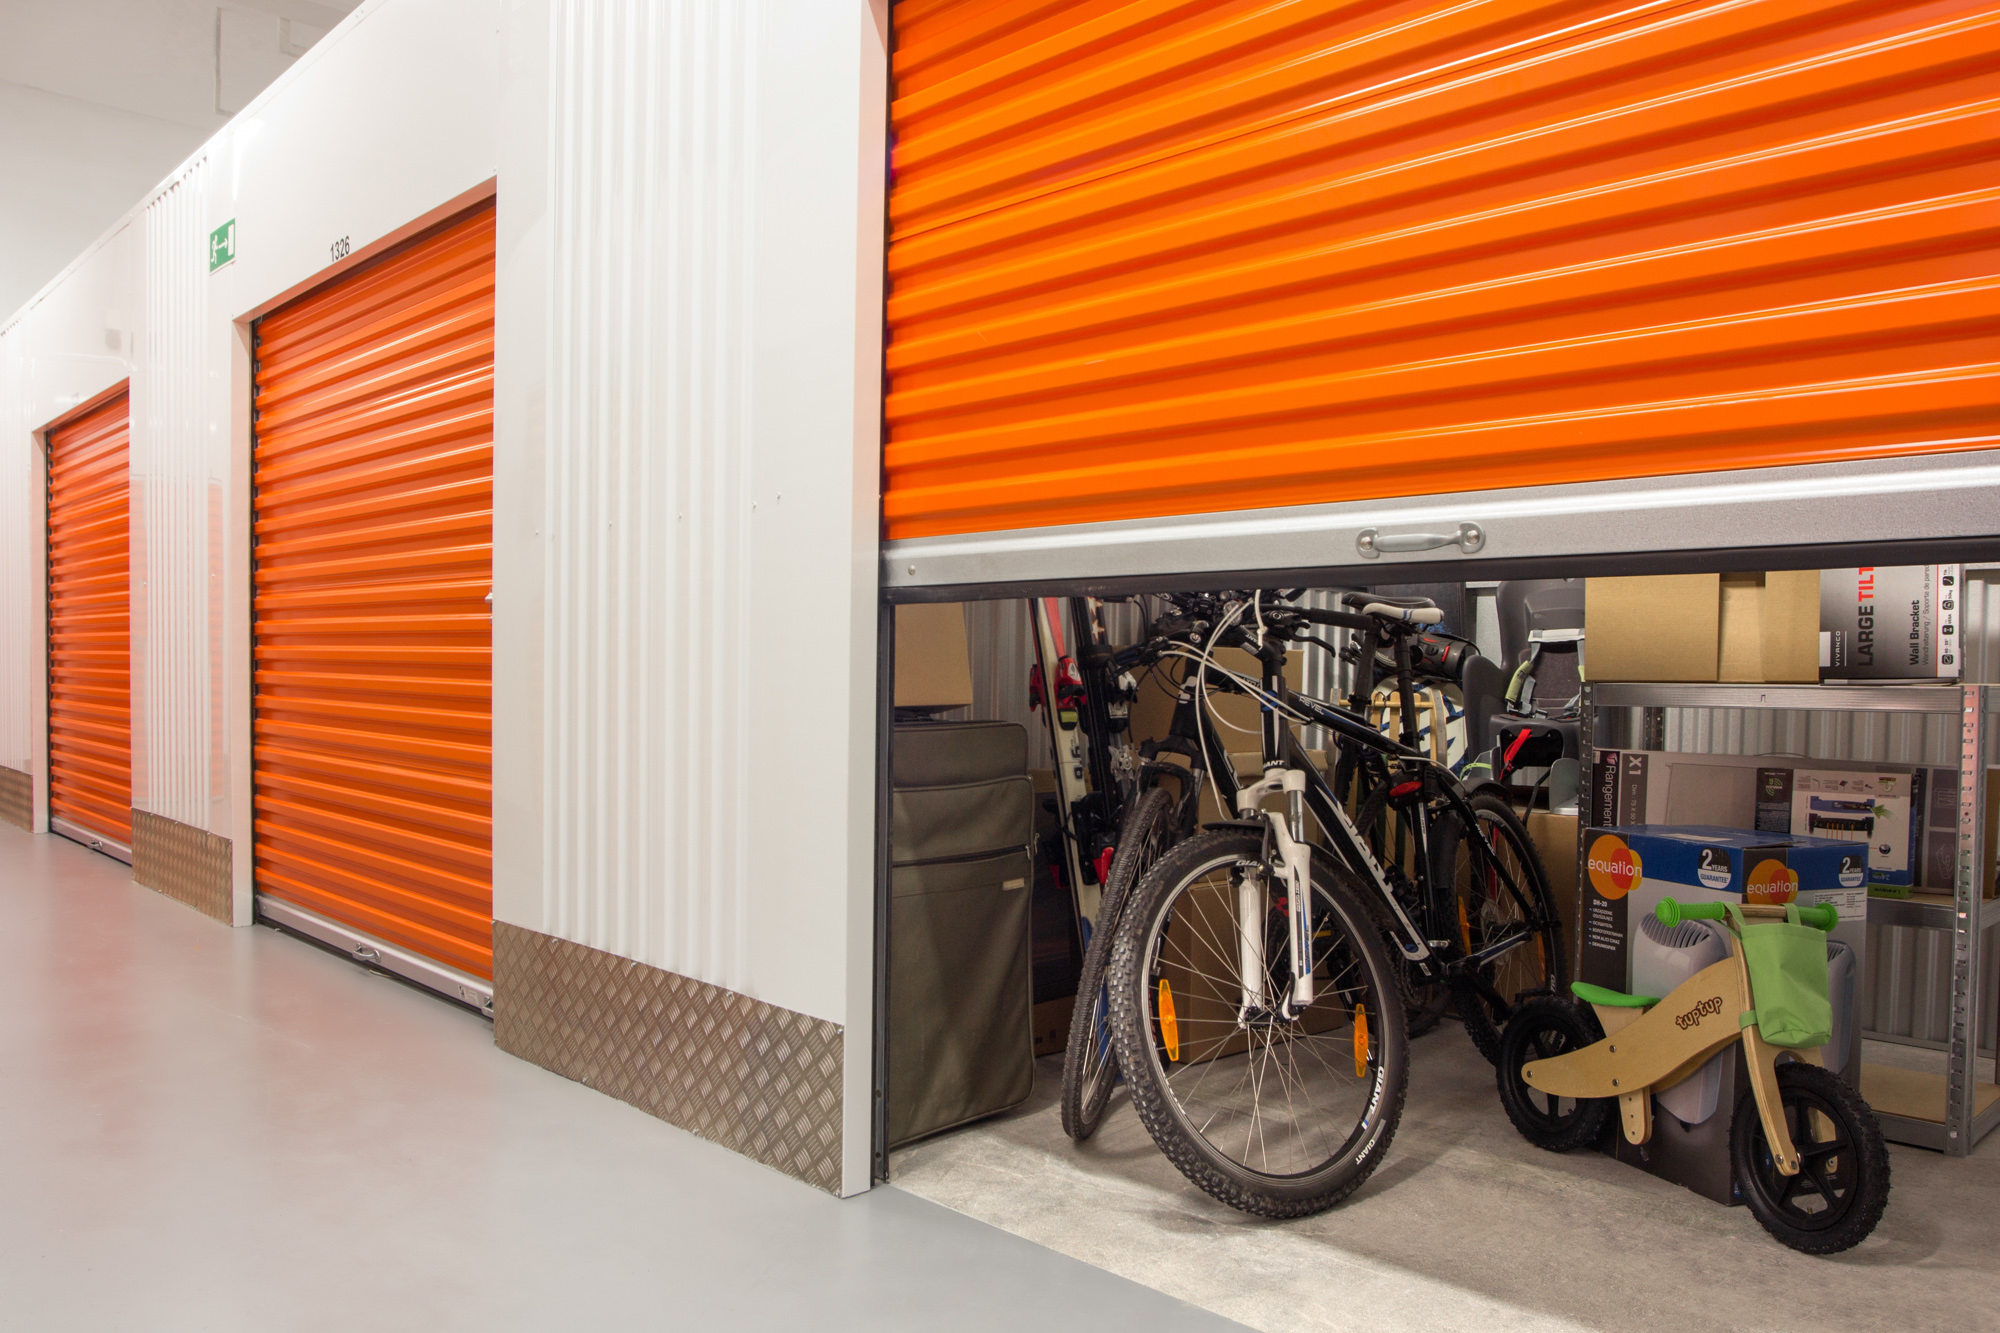 stokado_self_storage1